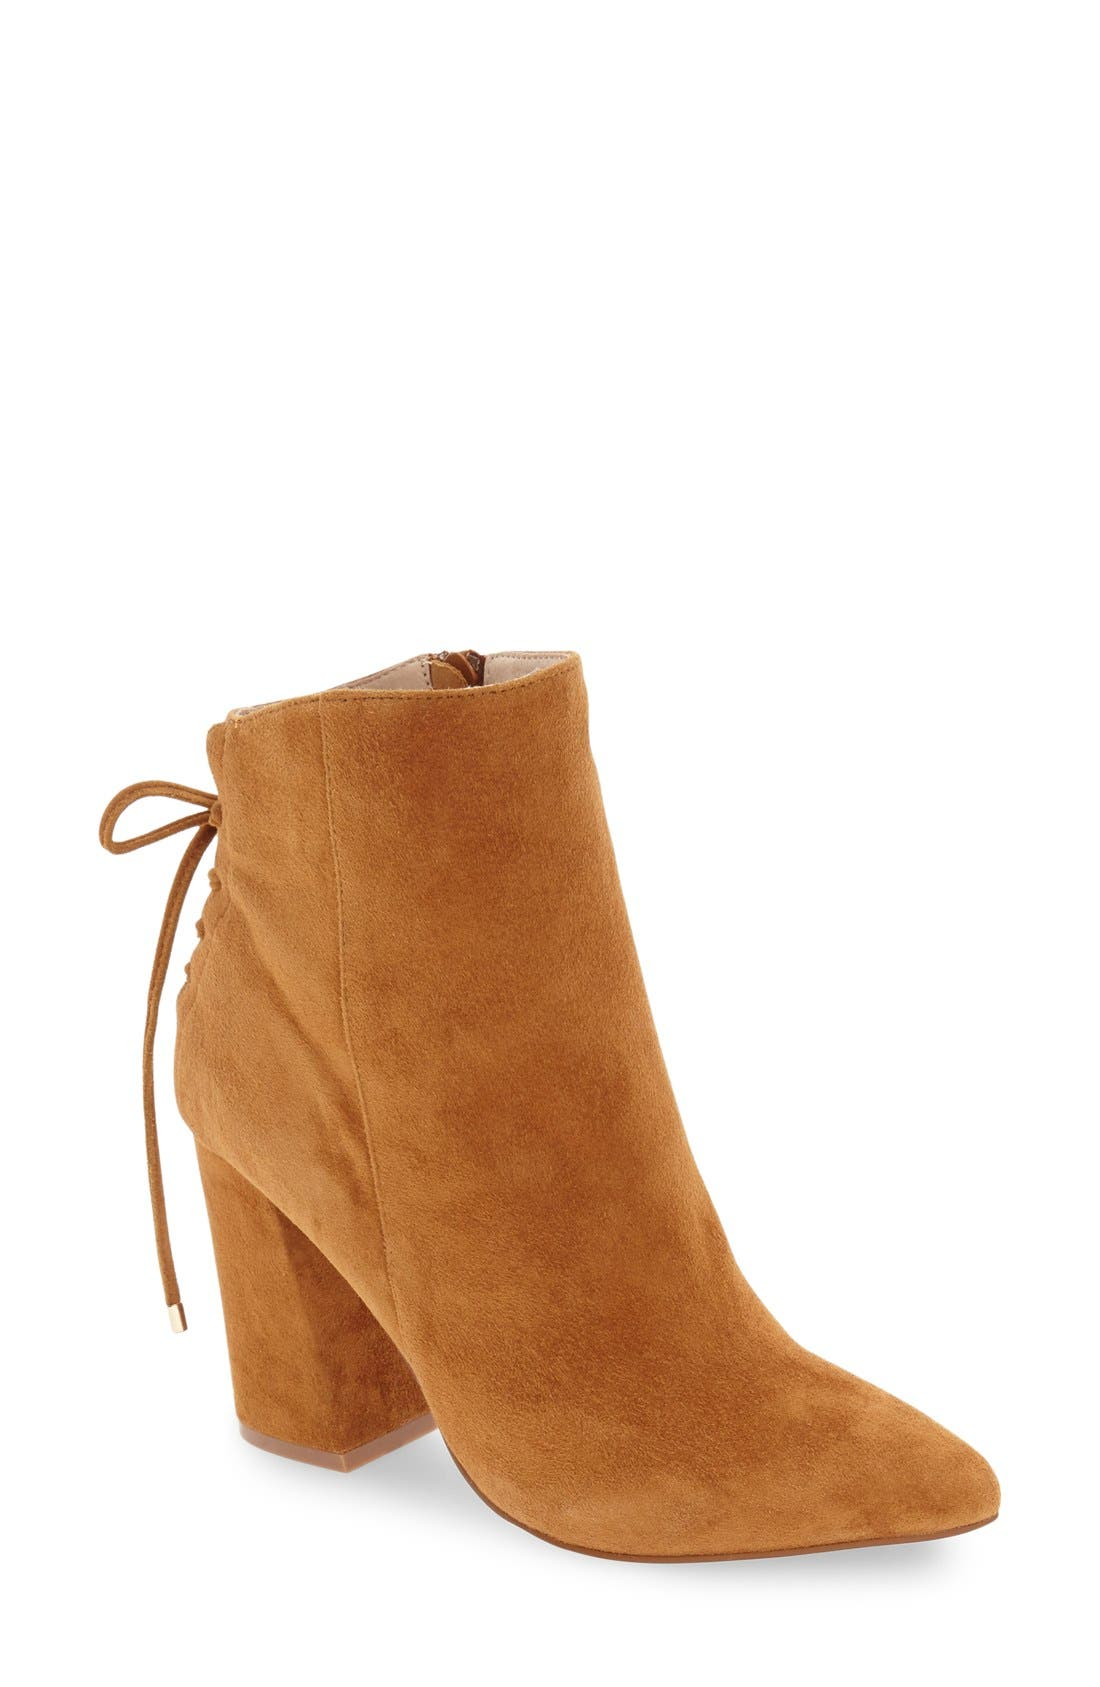 'Siren' Pointy Toe Bootie,                         Main,                         color, Caramel Suede